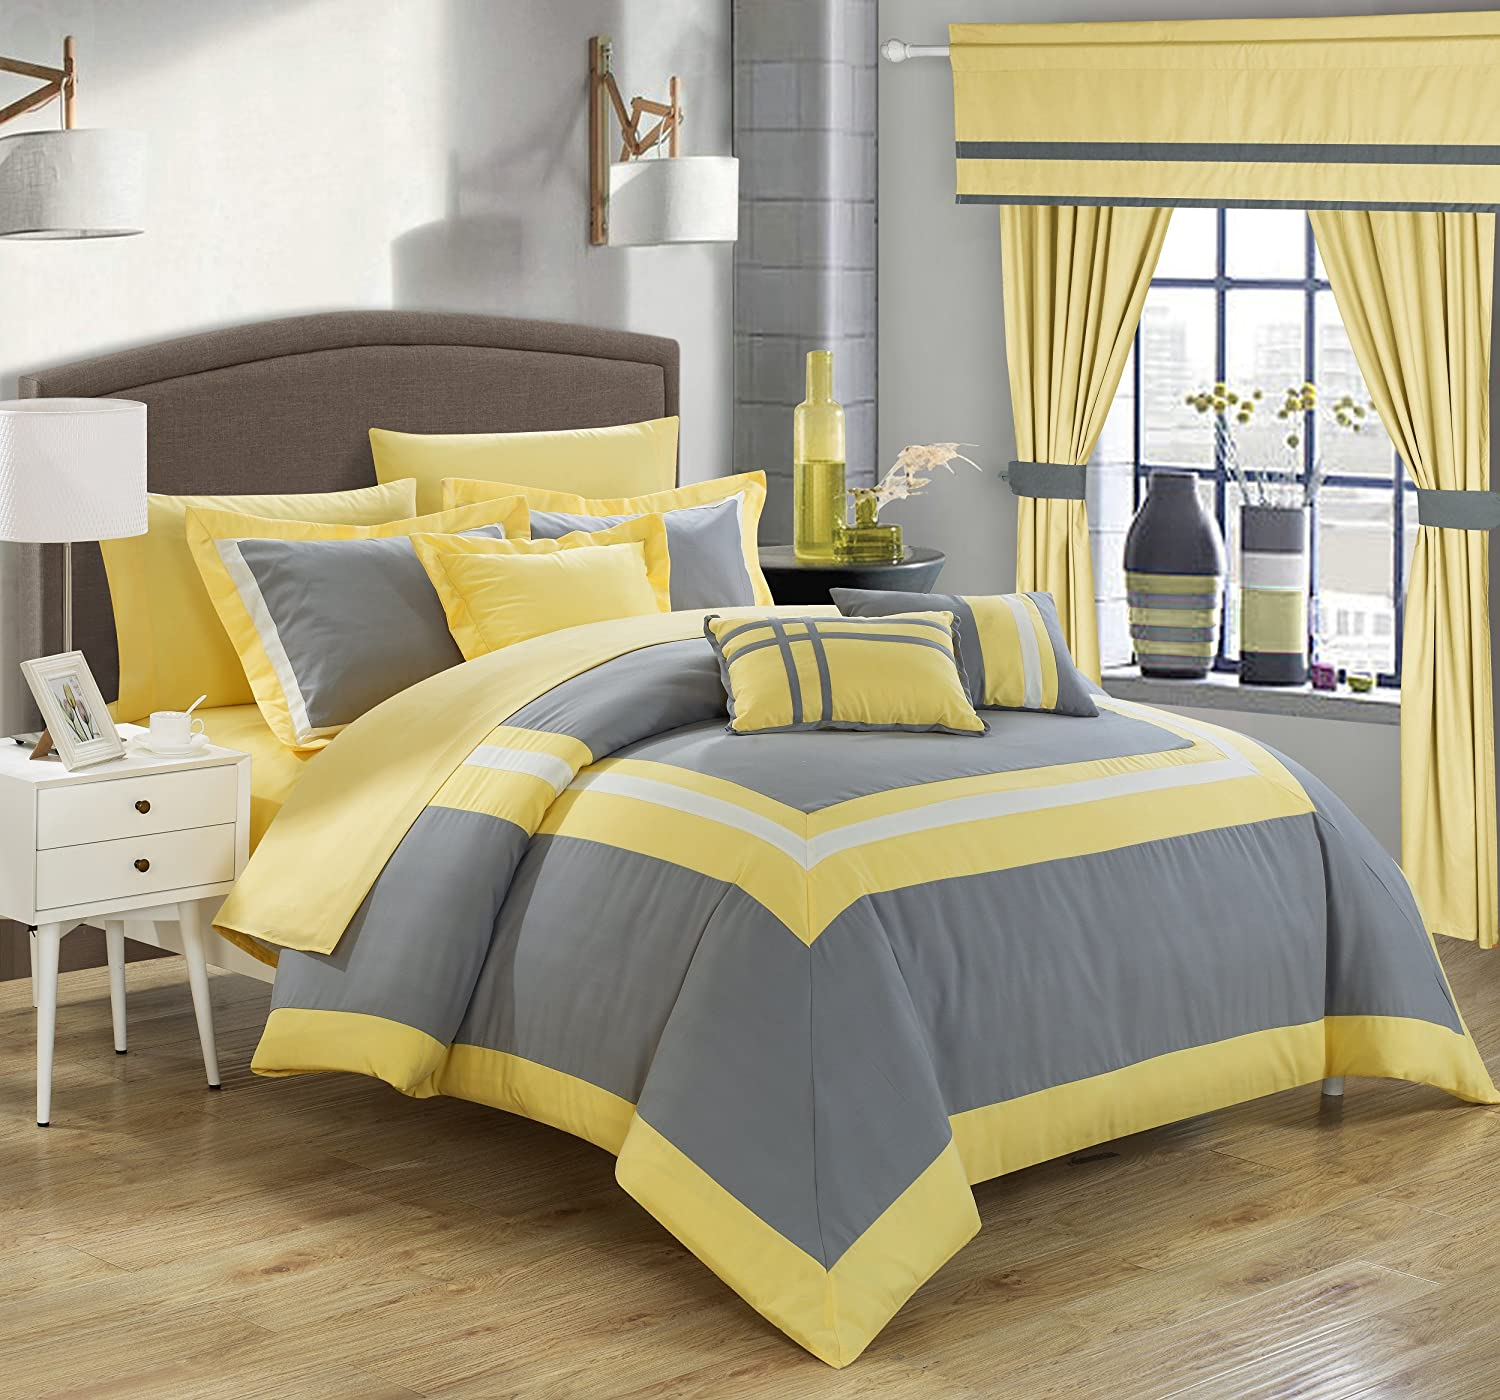 Chic Home Ritz 20 Piece Comforter Set Color Block Bed in a Bag with Sheets Curtains Queen Black CS4124-AN